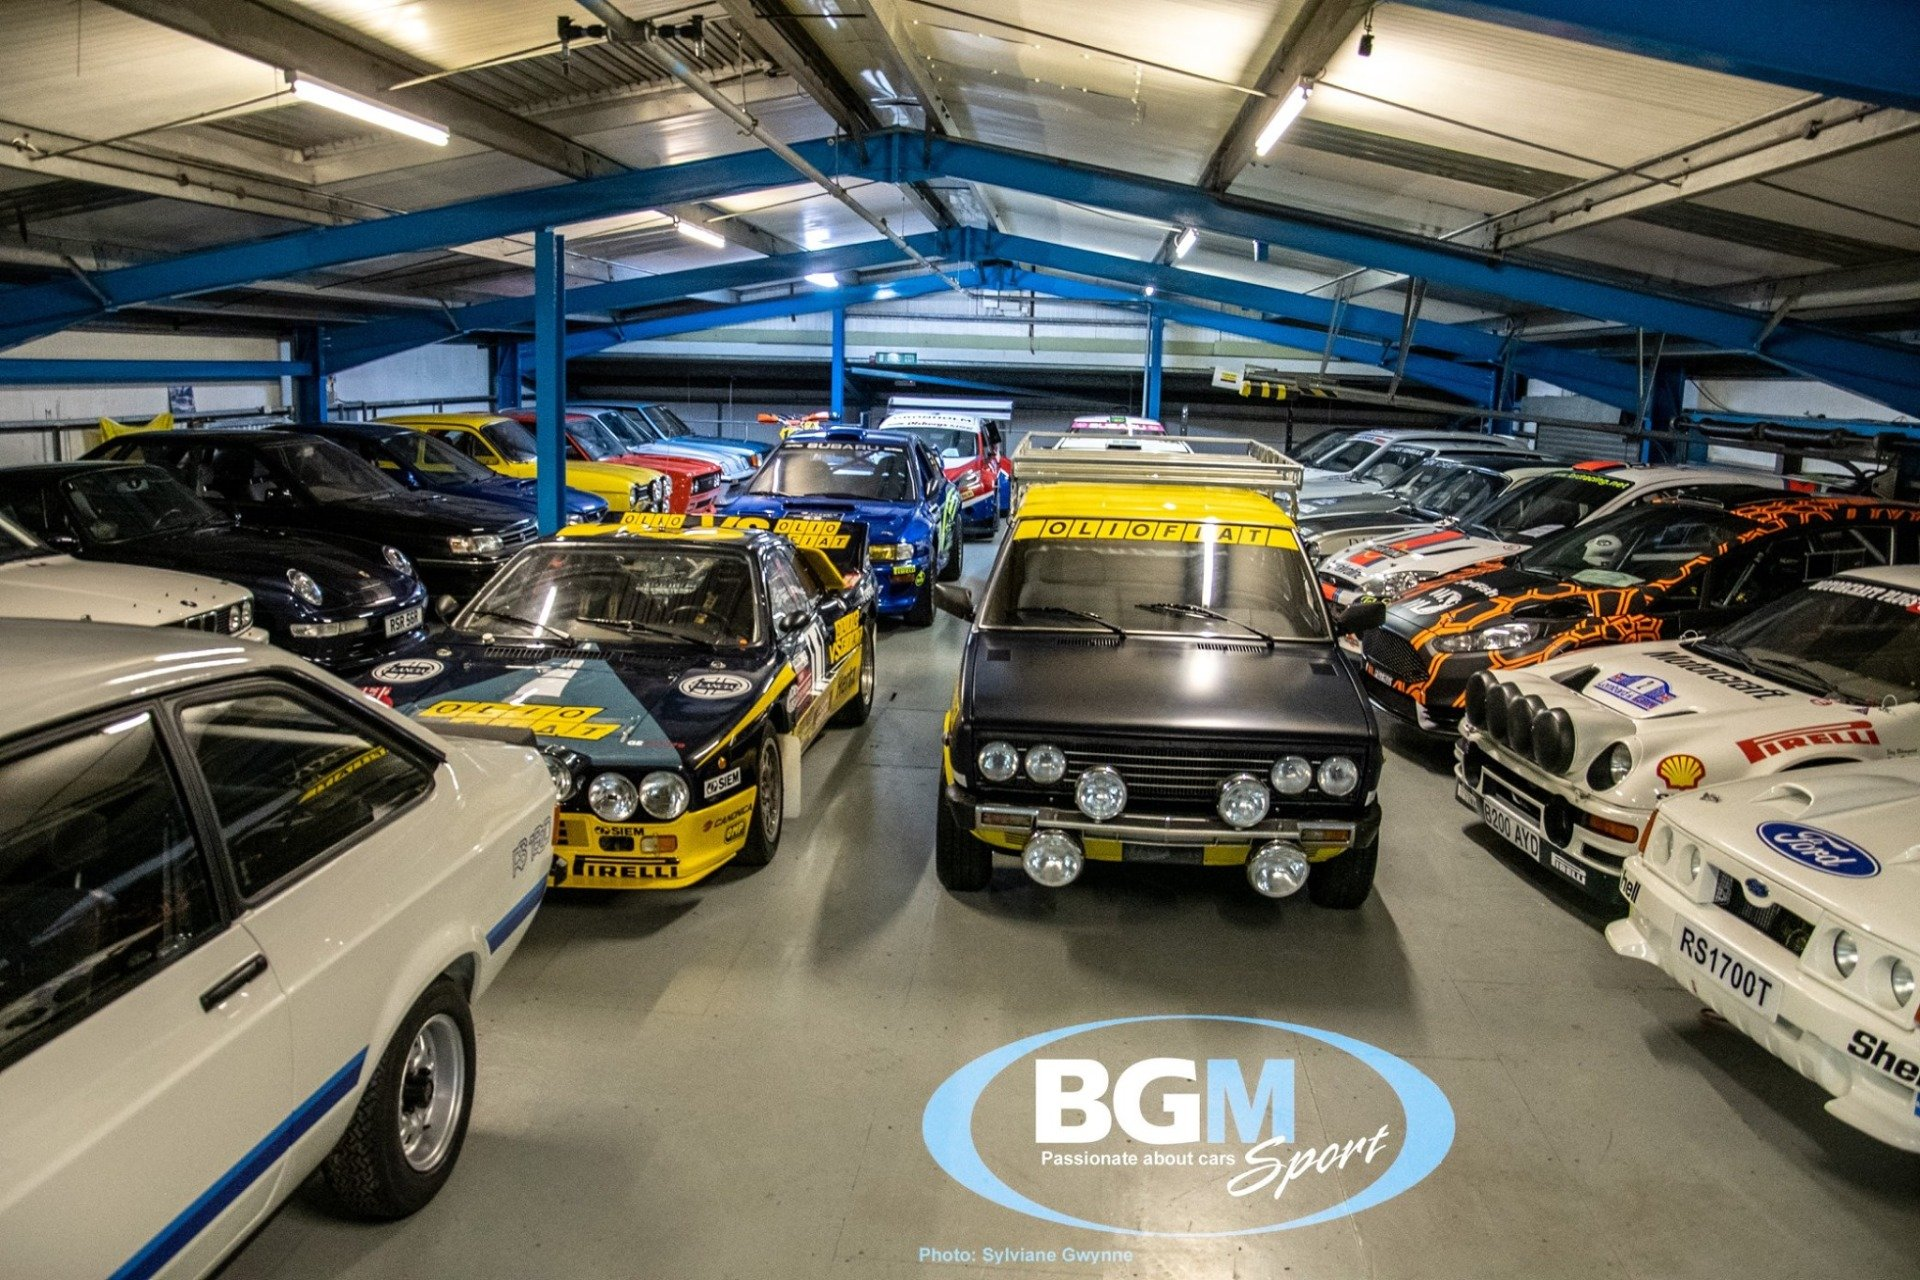 bgm-sport-workshop-tour-03